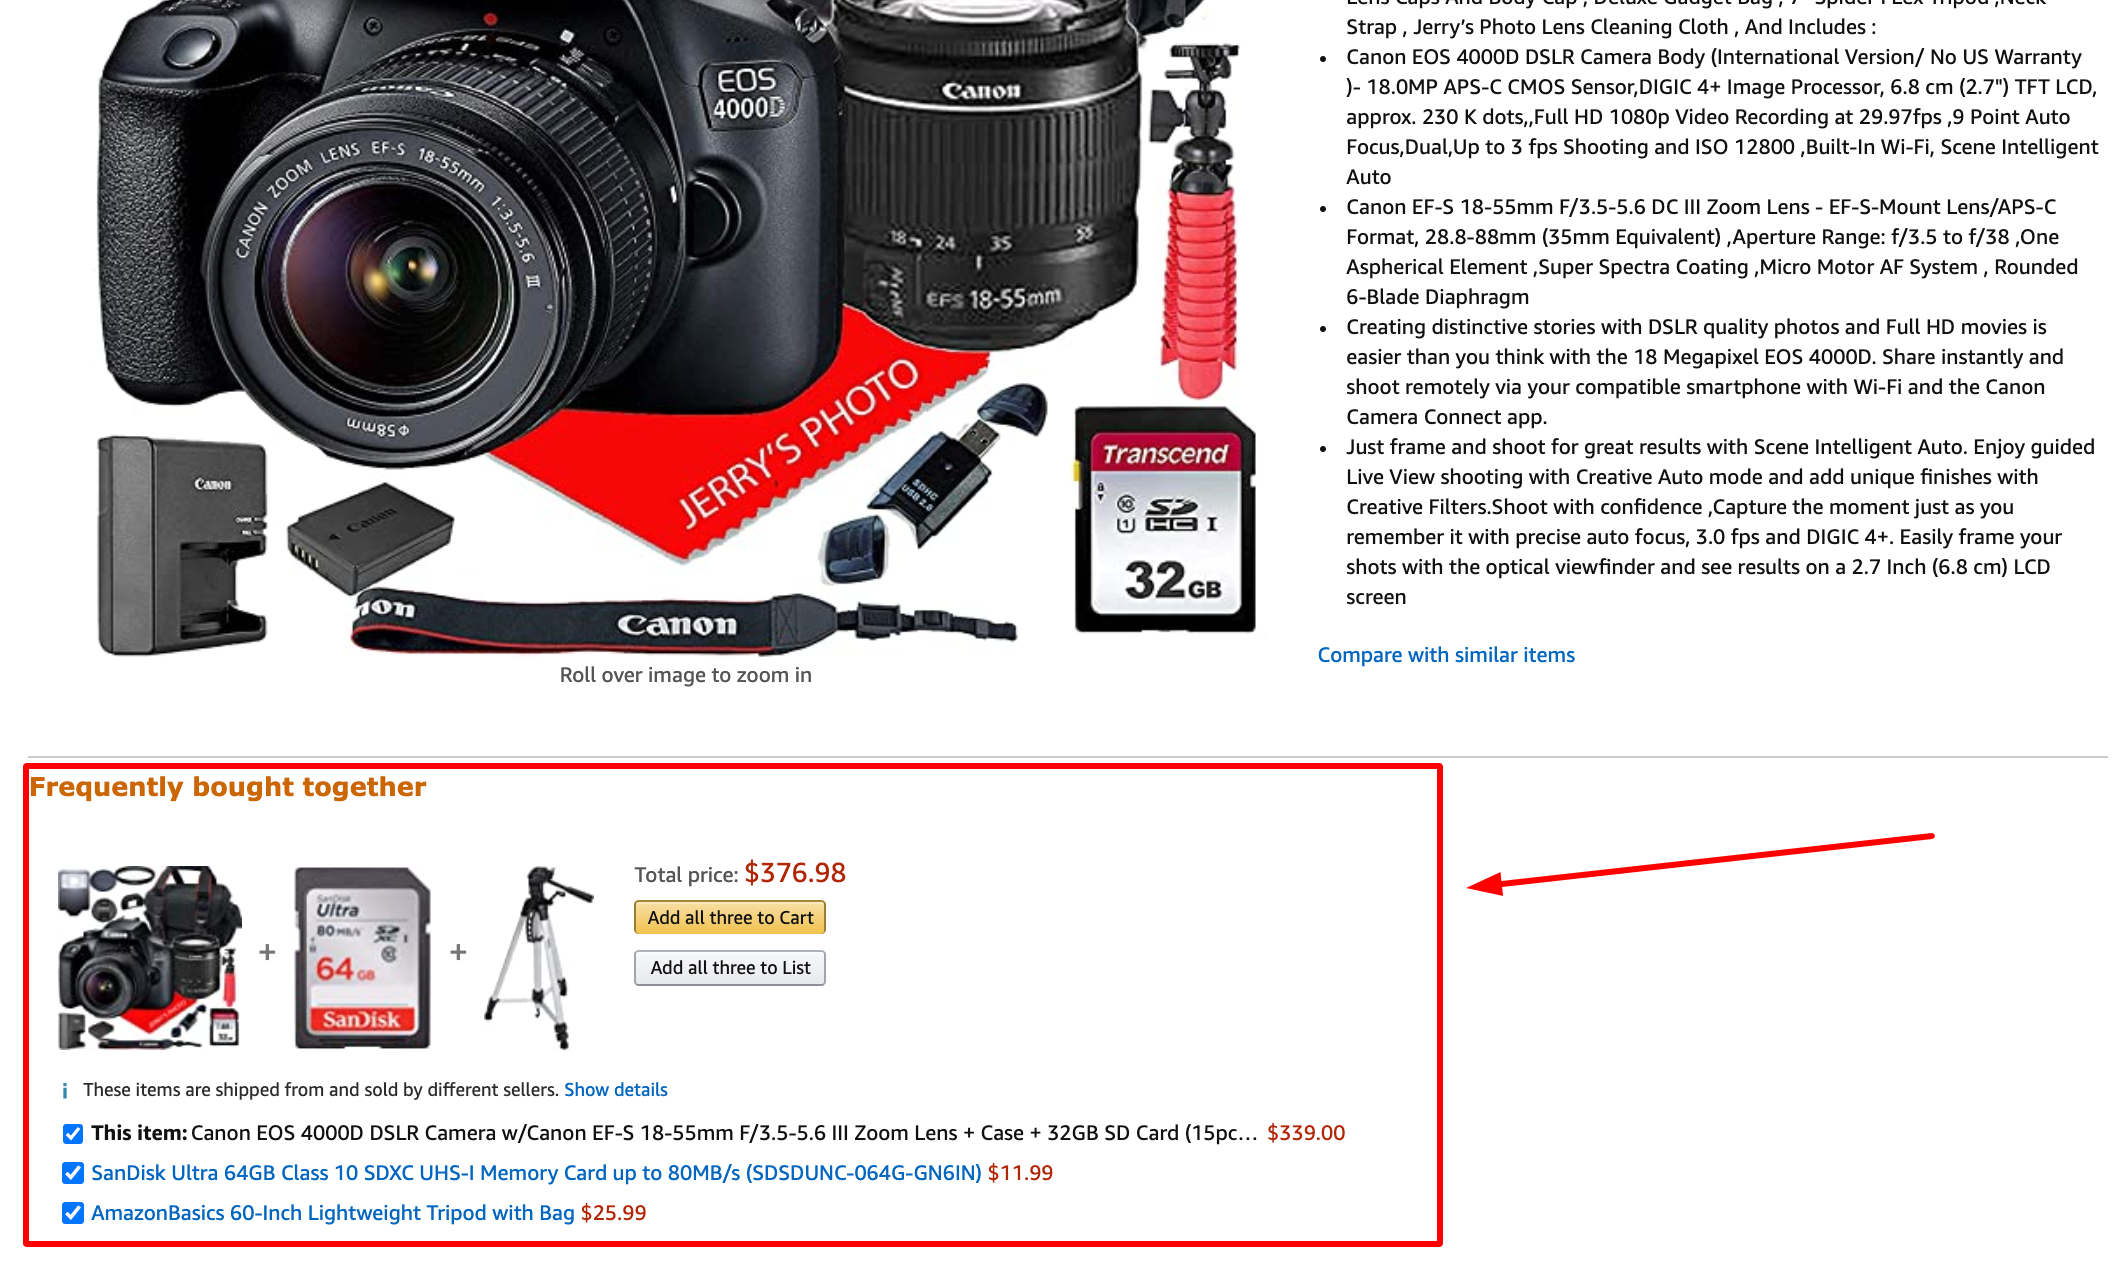 Amazon product page upsell example